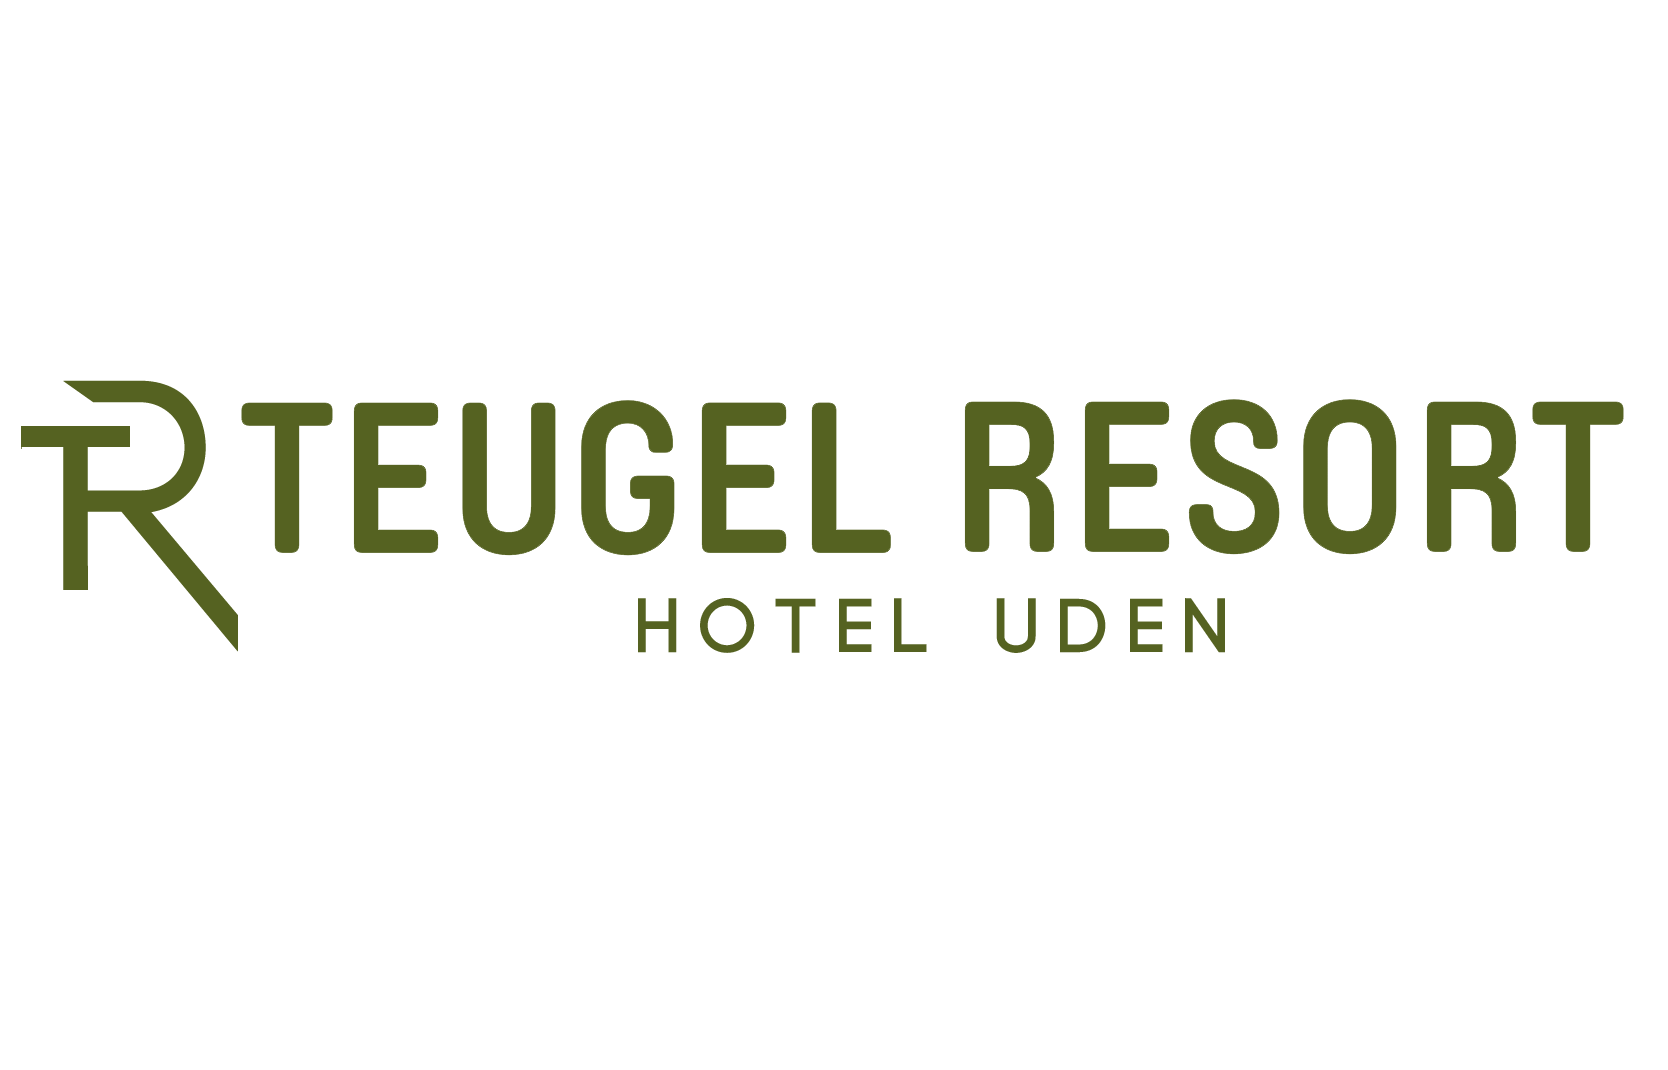 Teugel Resort Hotel